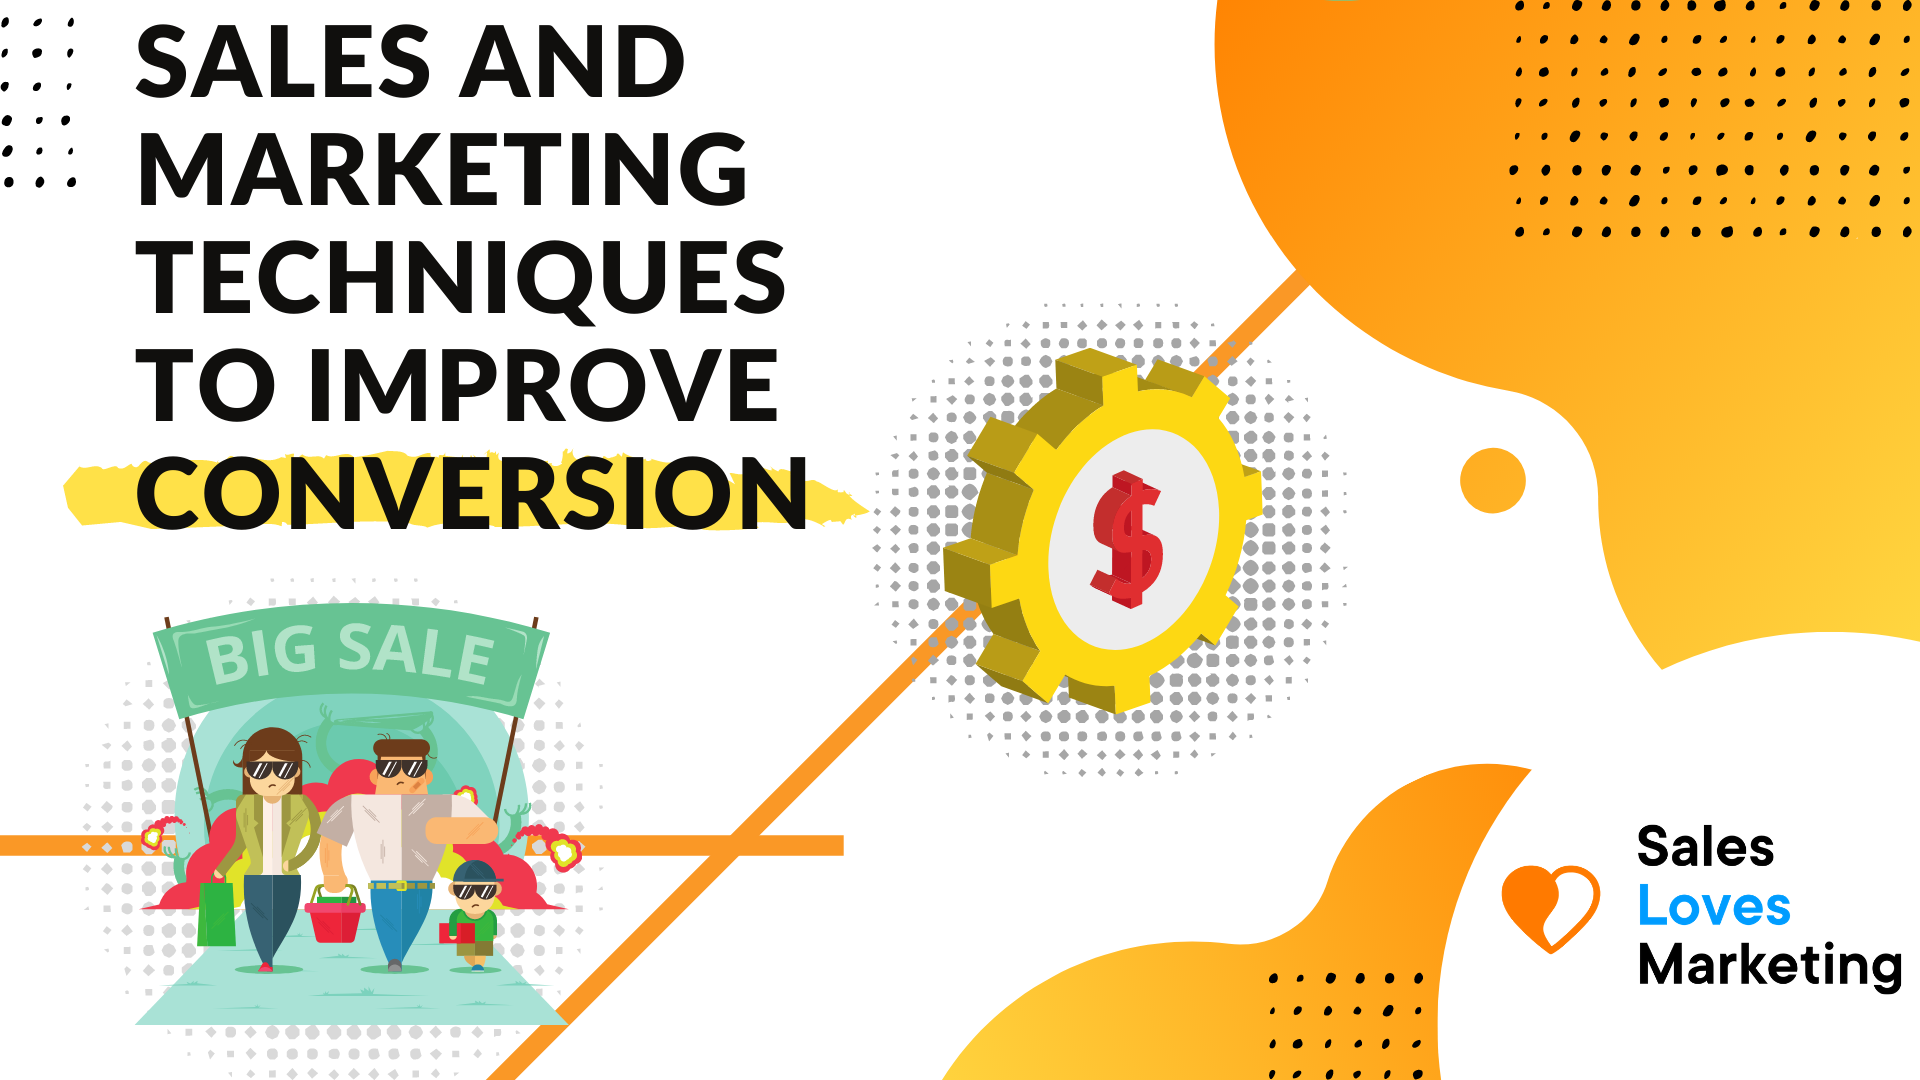 sales and marketing techniques to help improve conversions